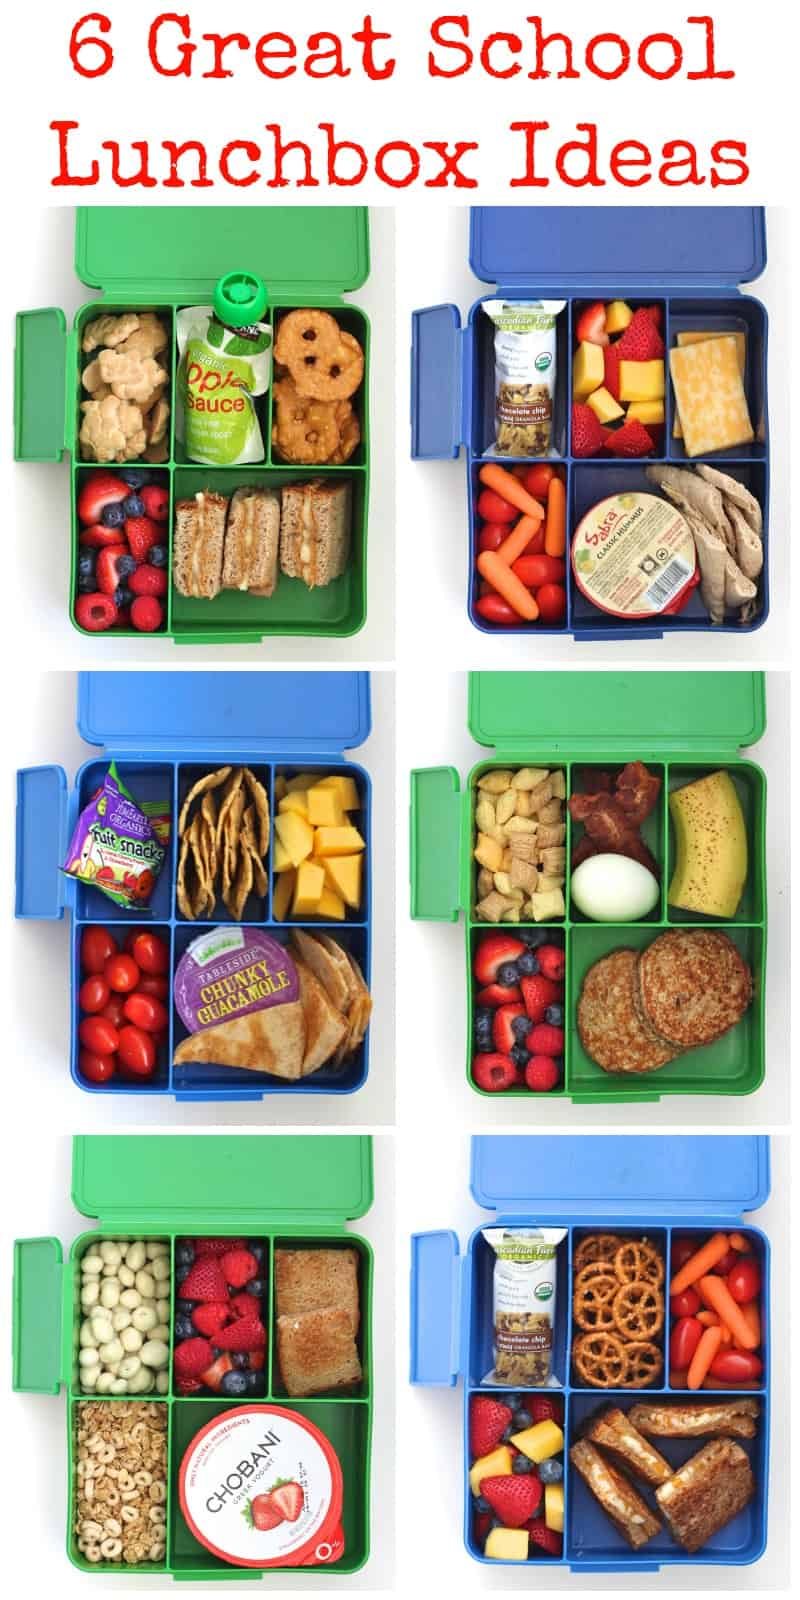 6 Great School Lunchbox Ideas